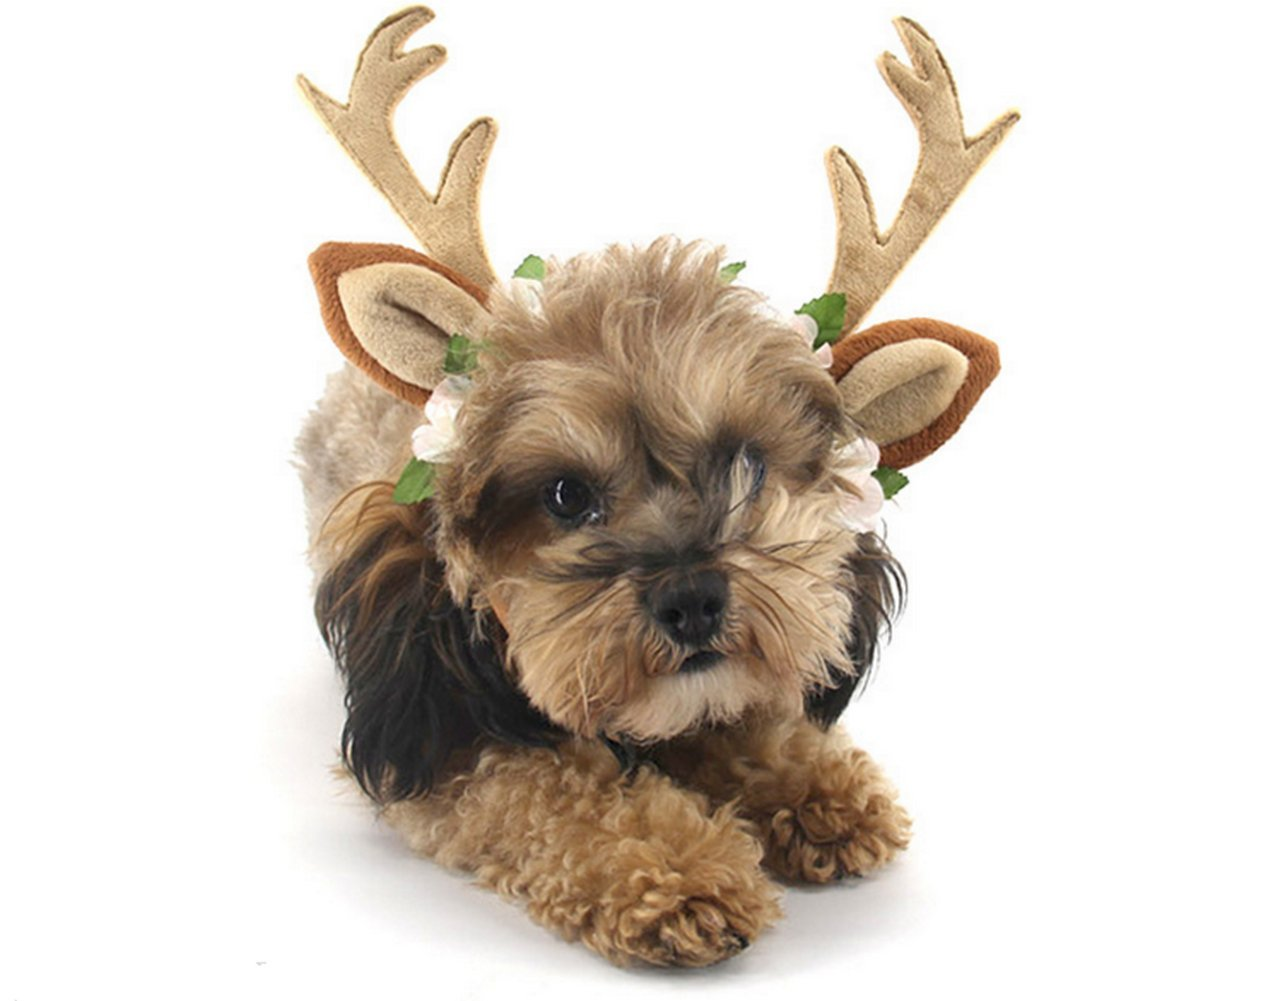 Vevins Pet Antlers Headband Christmas Halloween Costume Adjustable Dogs Cats Hair Accessories, Large Size